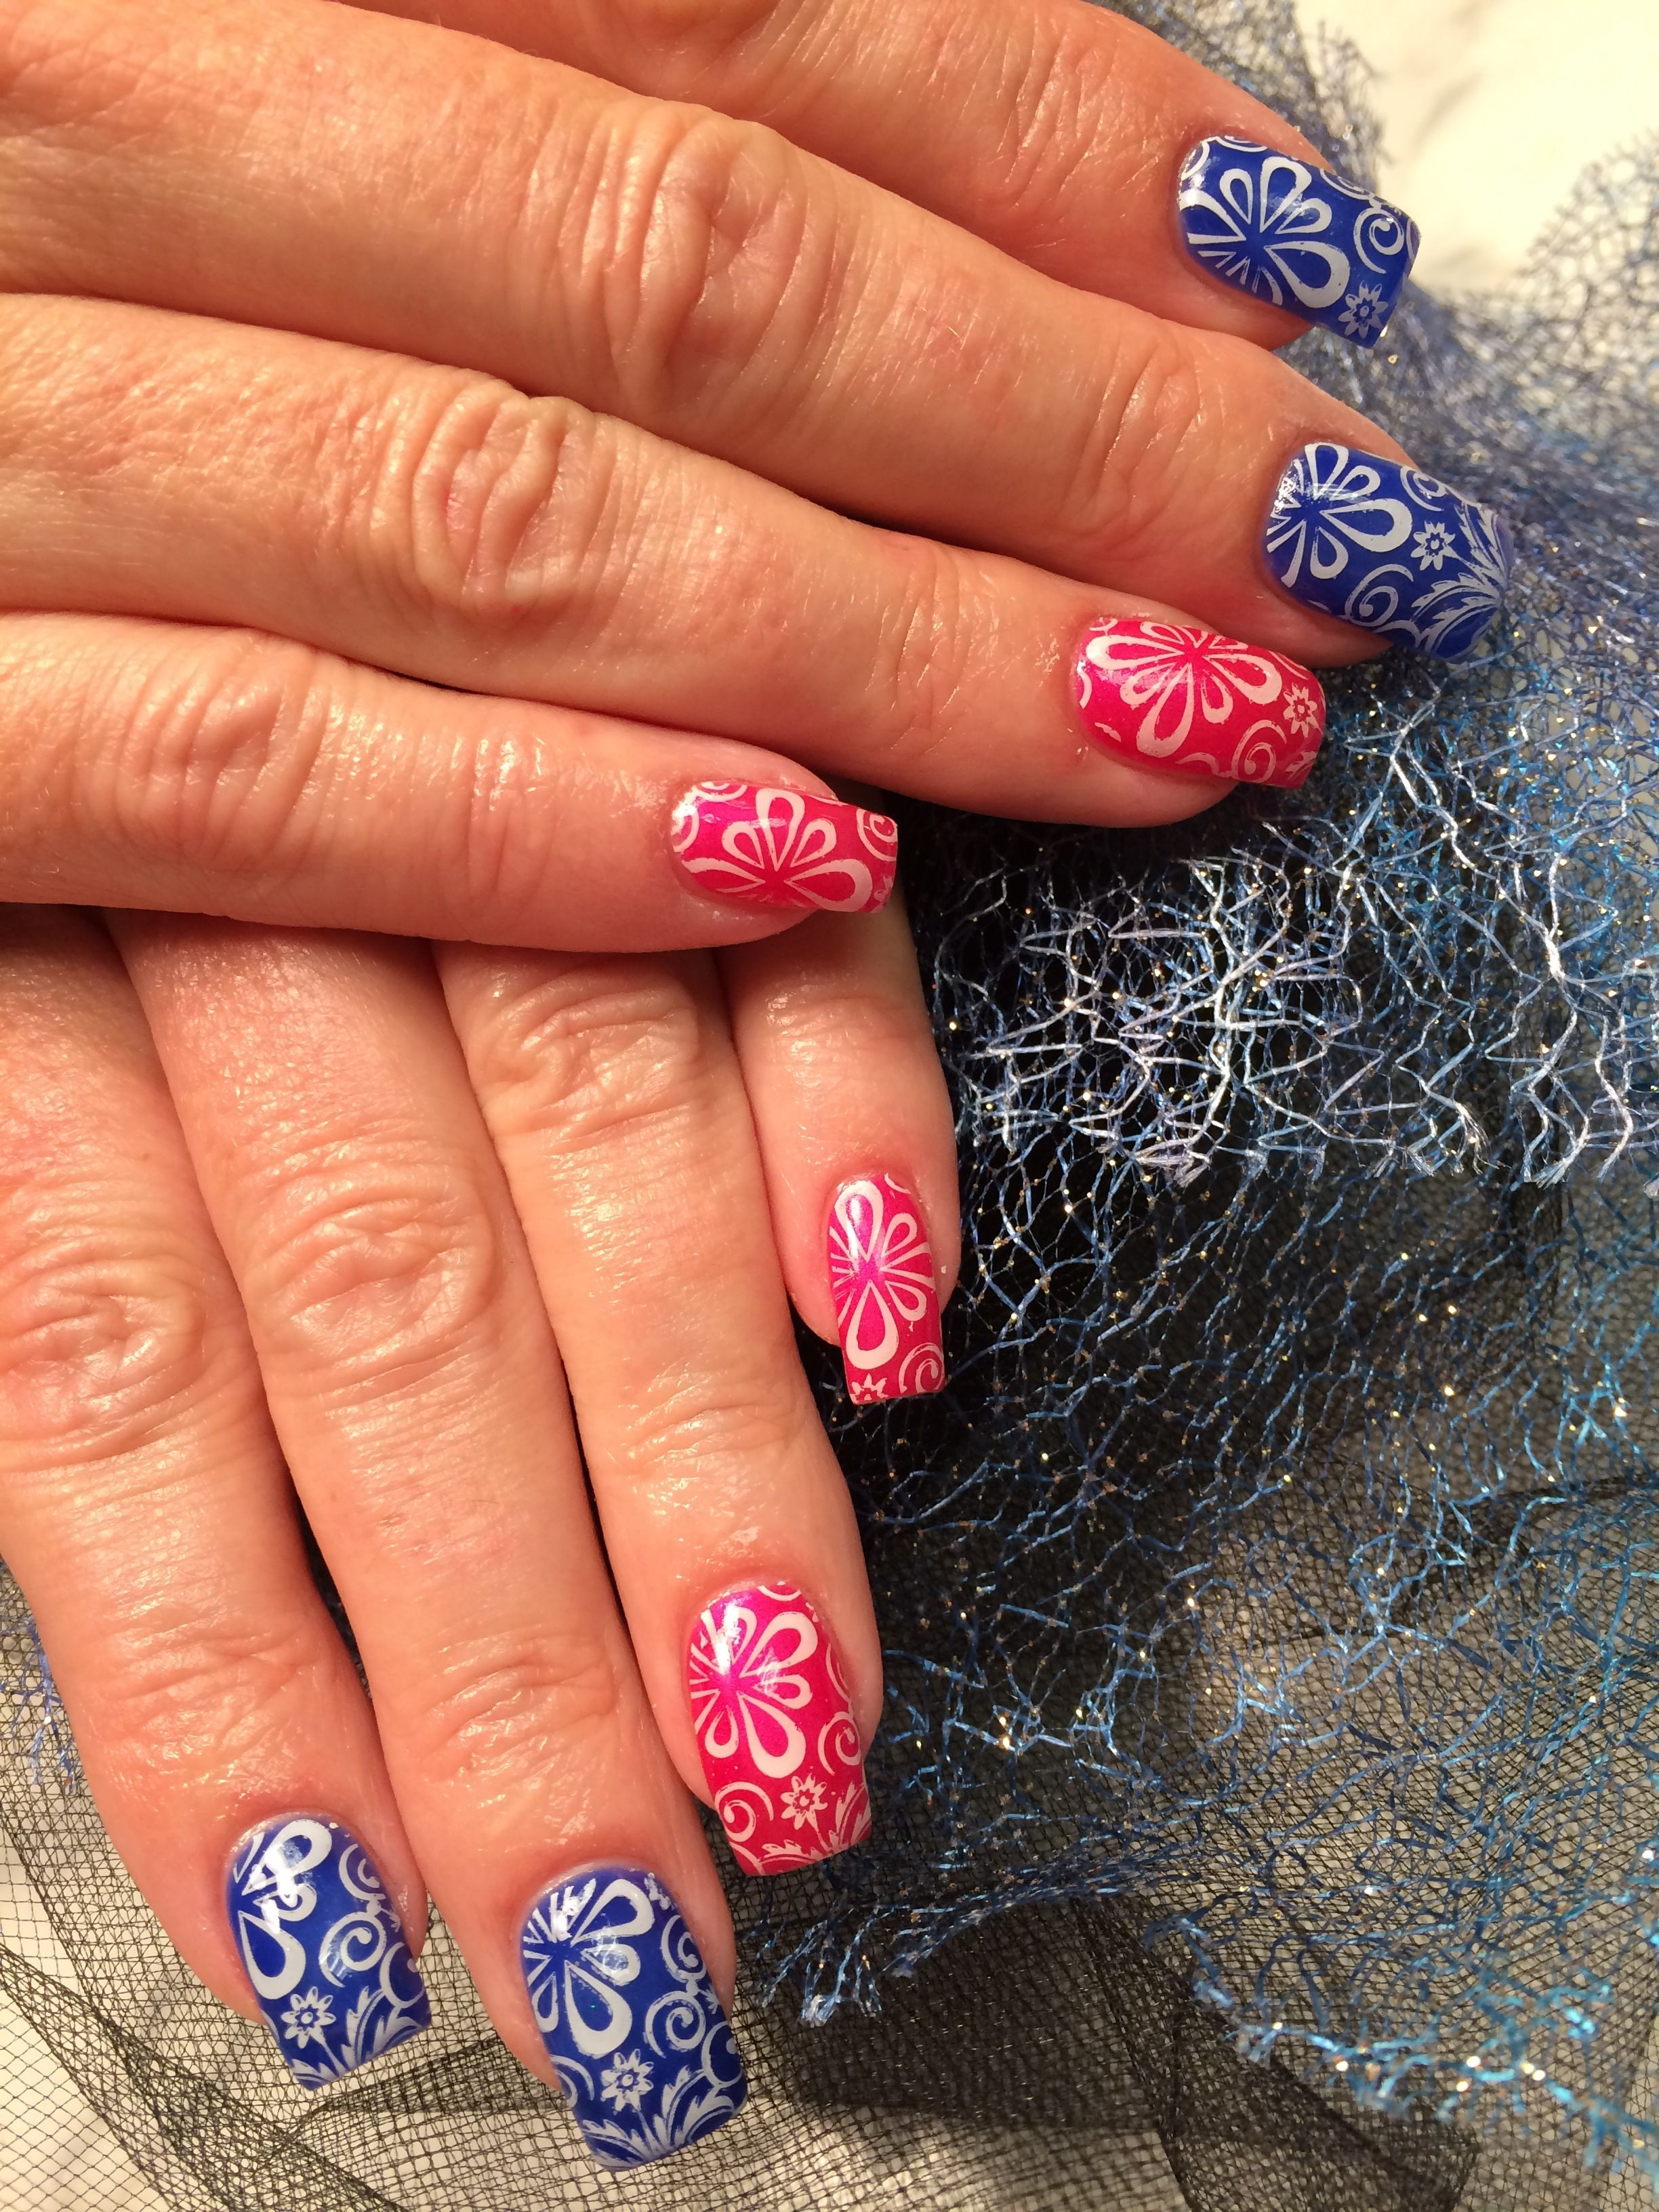 Celebrity Hair & Nails - 2 tips from 27 visitors - New York